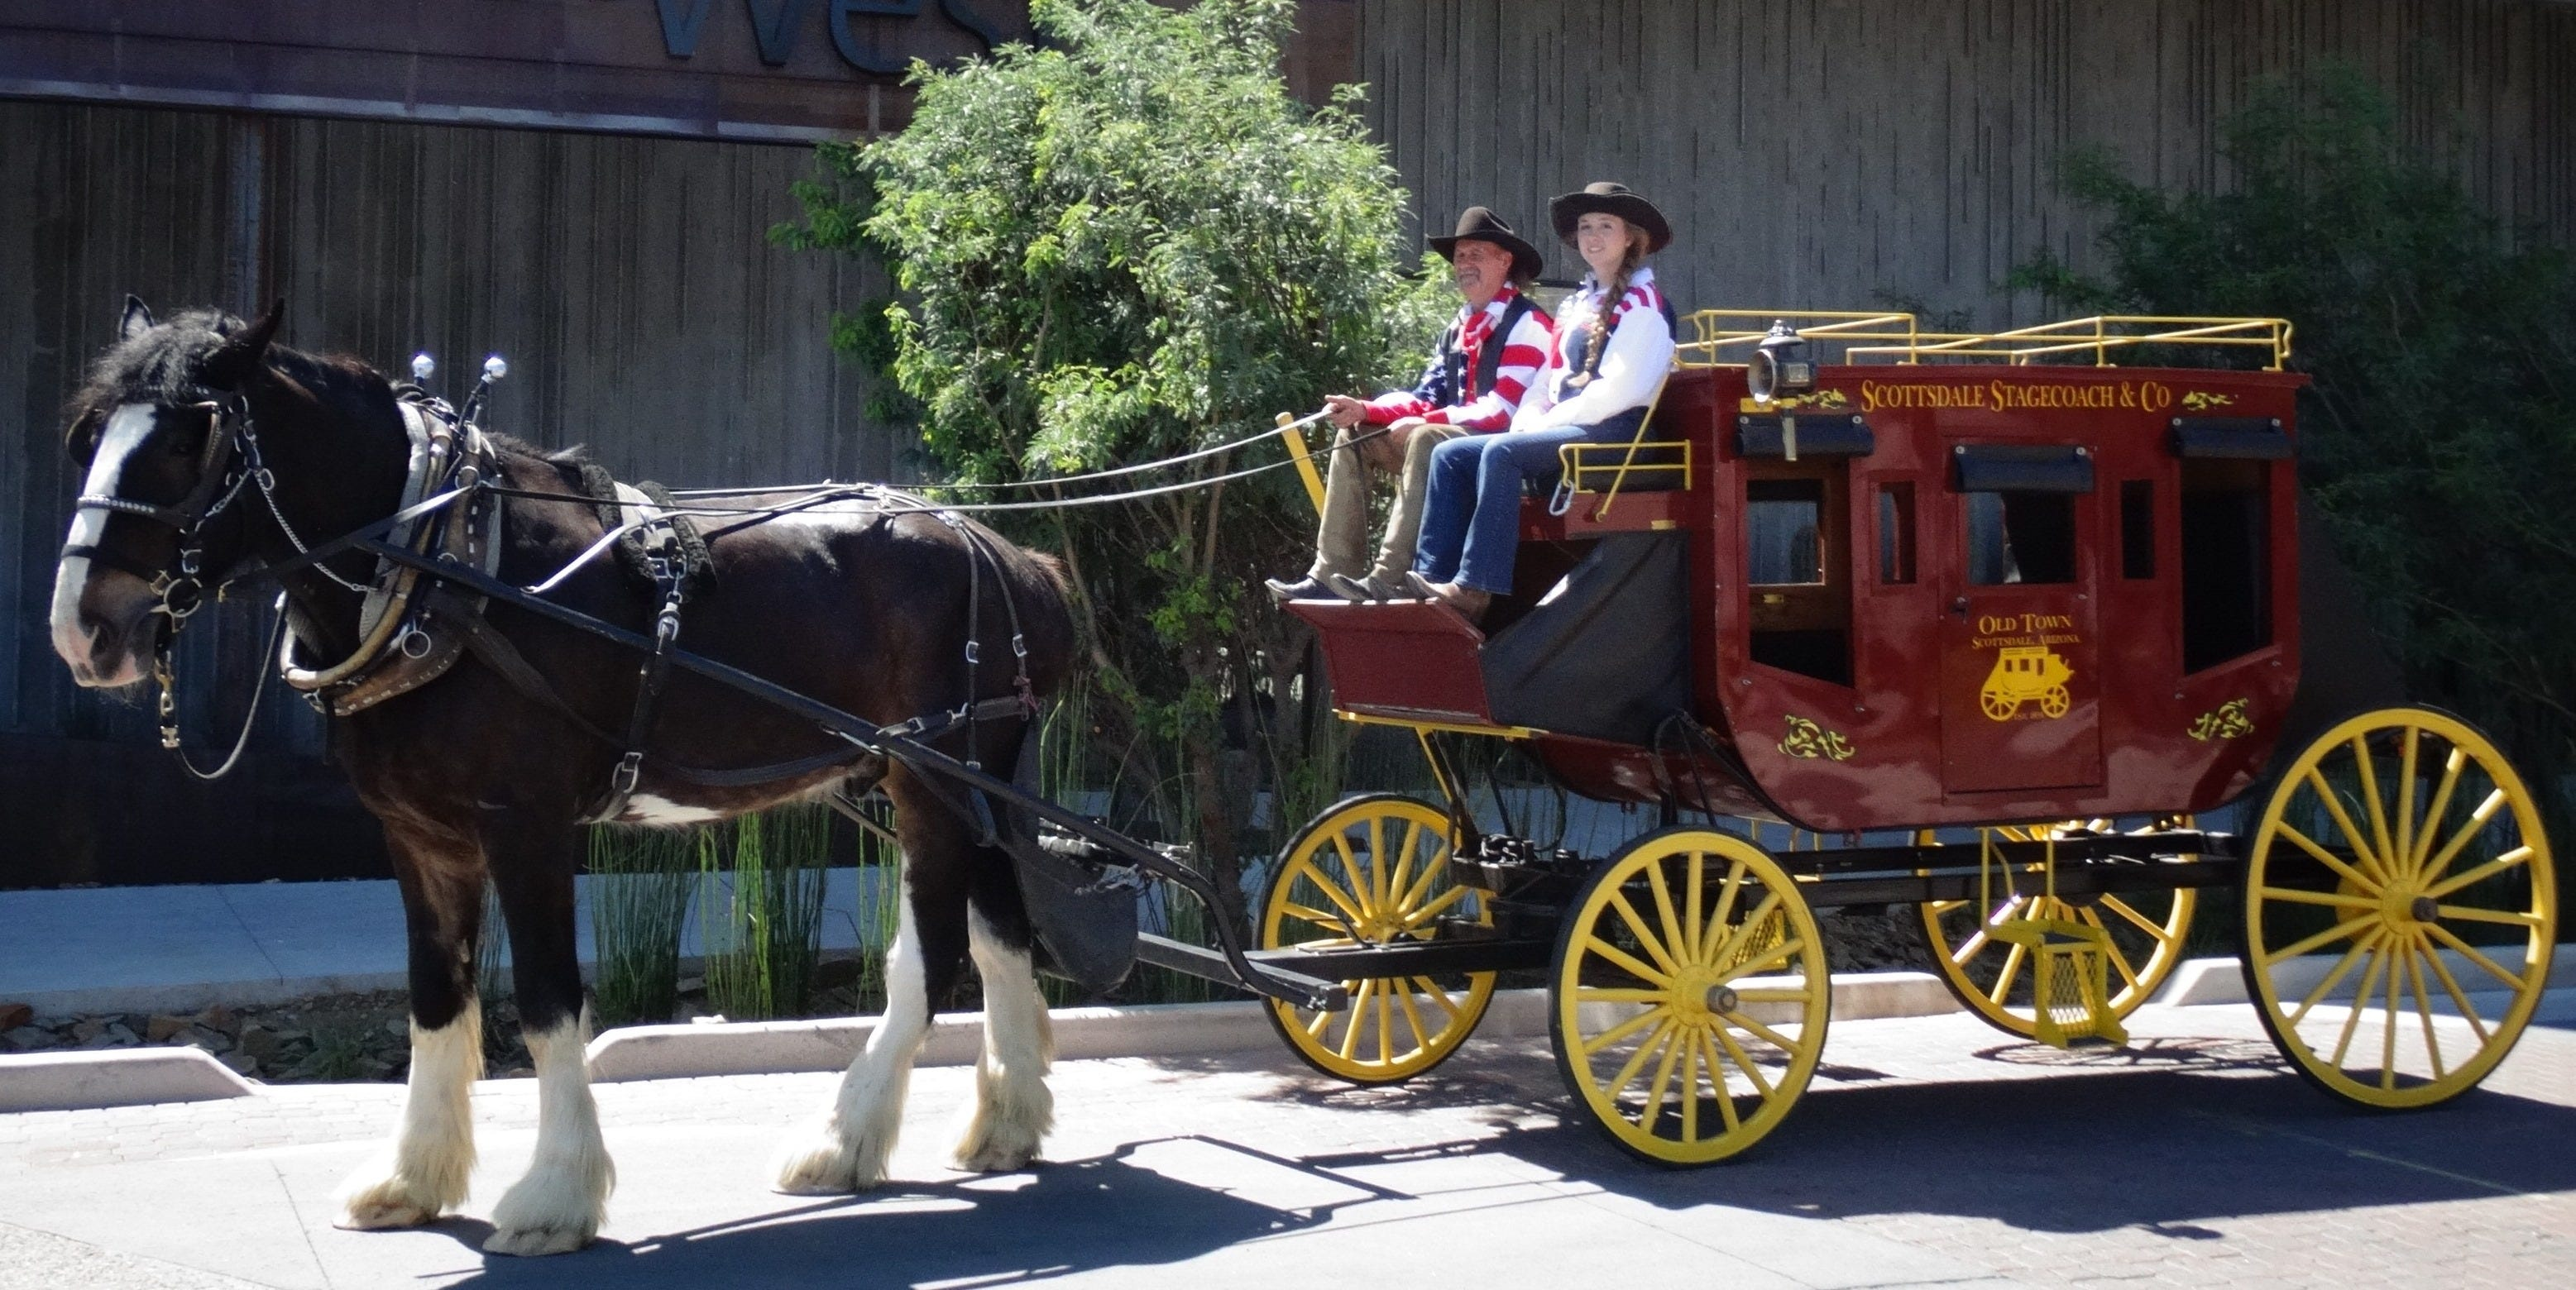 Scottsdale Horse and Carriage will still offer rides in Old Town